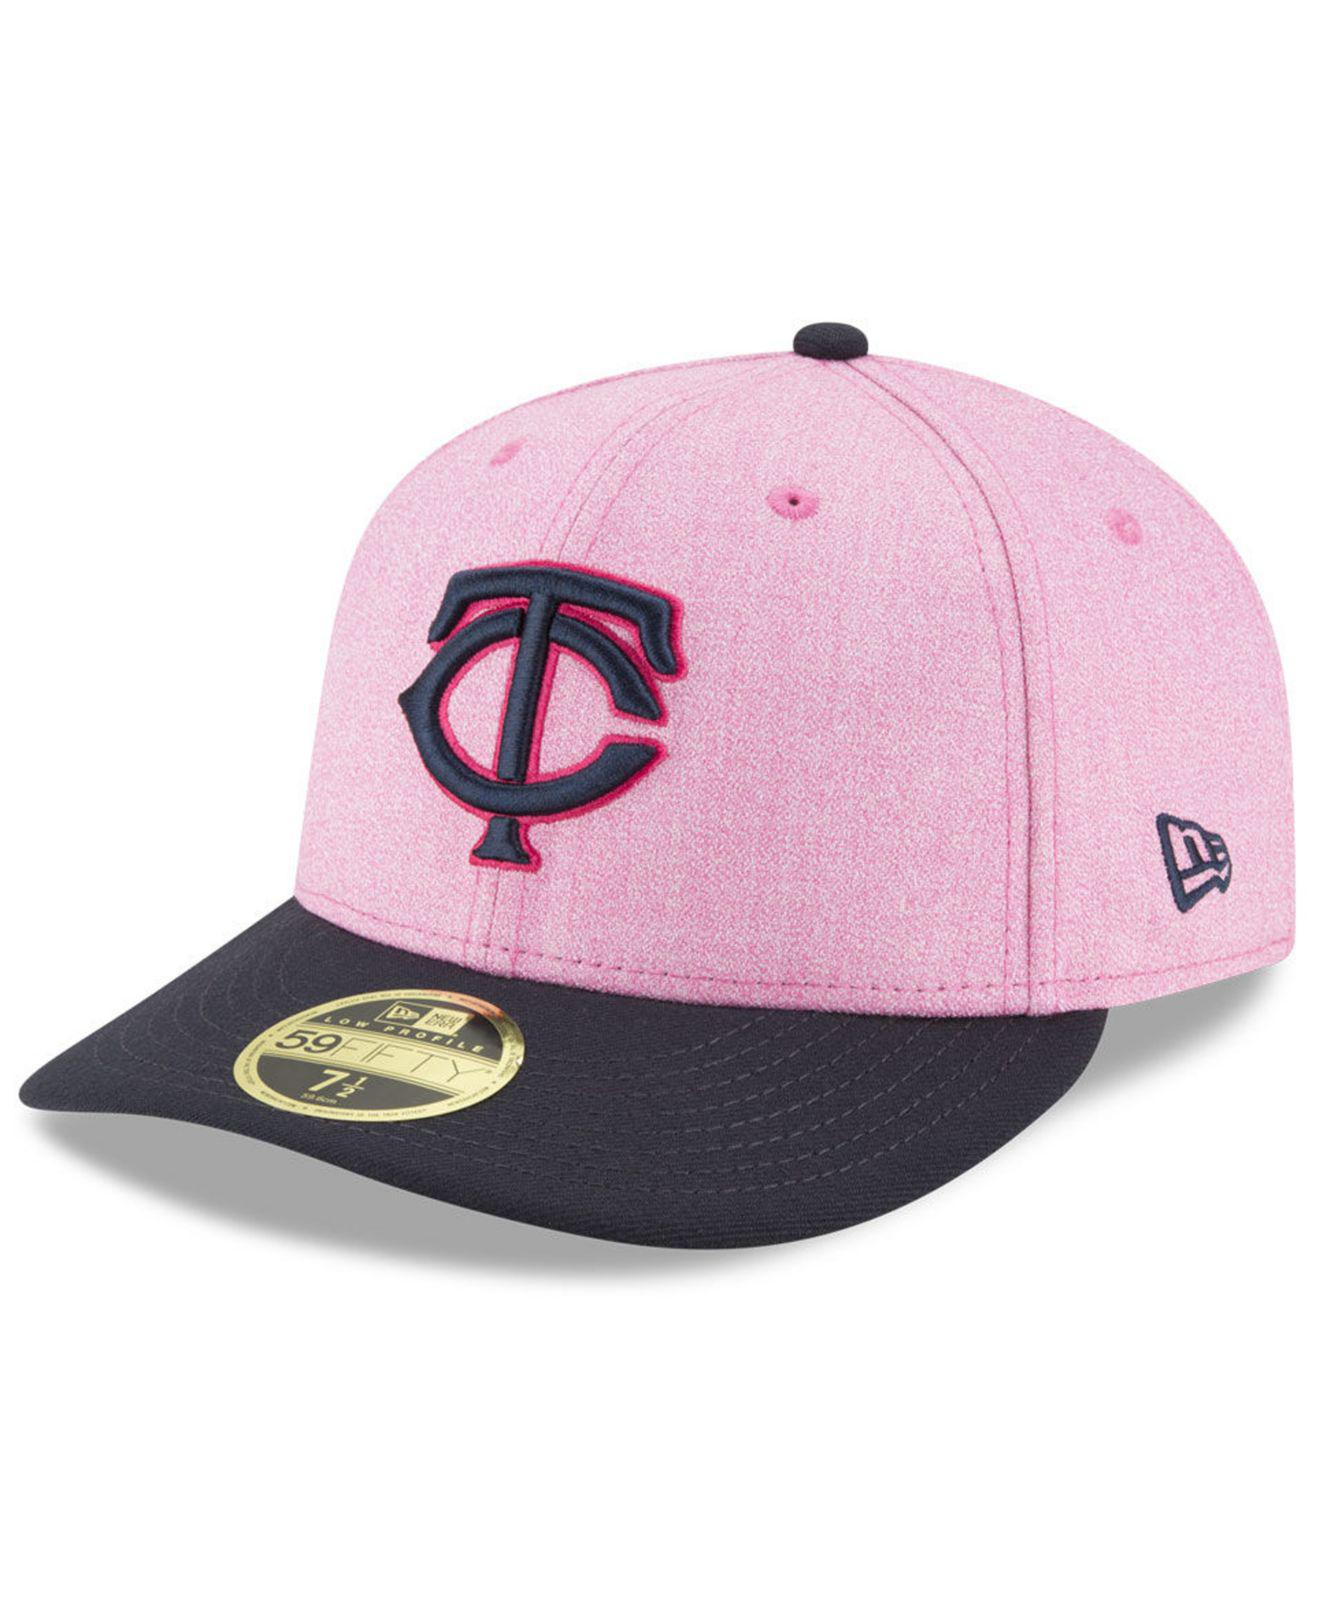 3b155332e151d4 KTZ. Women's Pink Minnesota Twins Mothers Day Low Profile 59fifty Fitted Cap